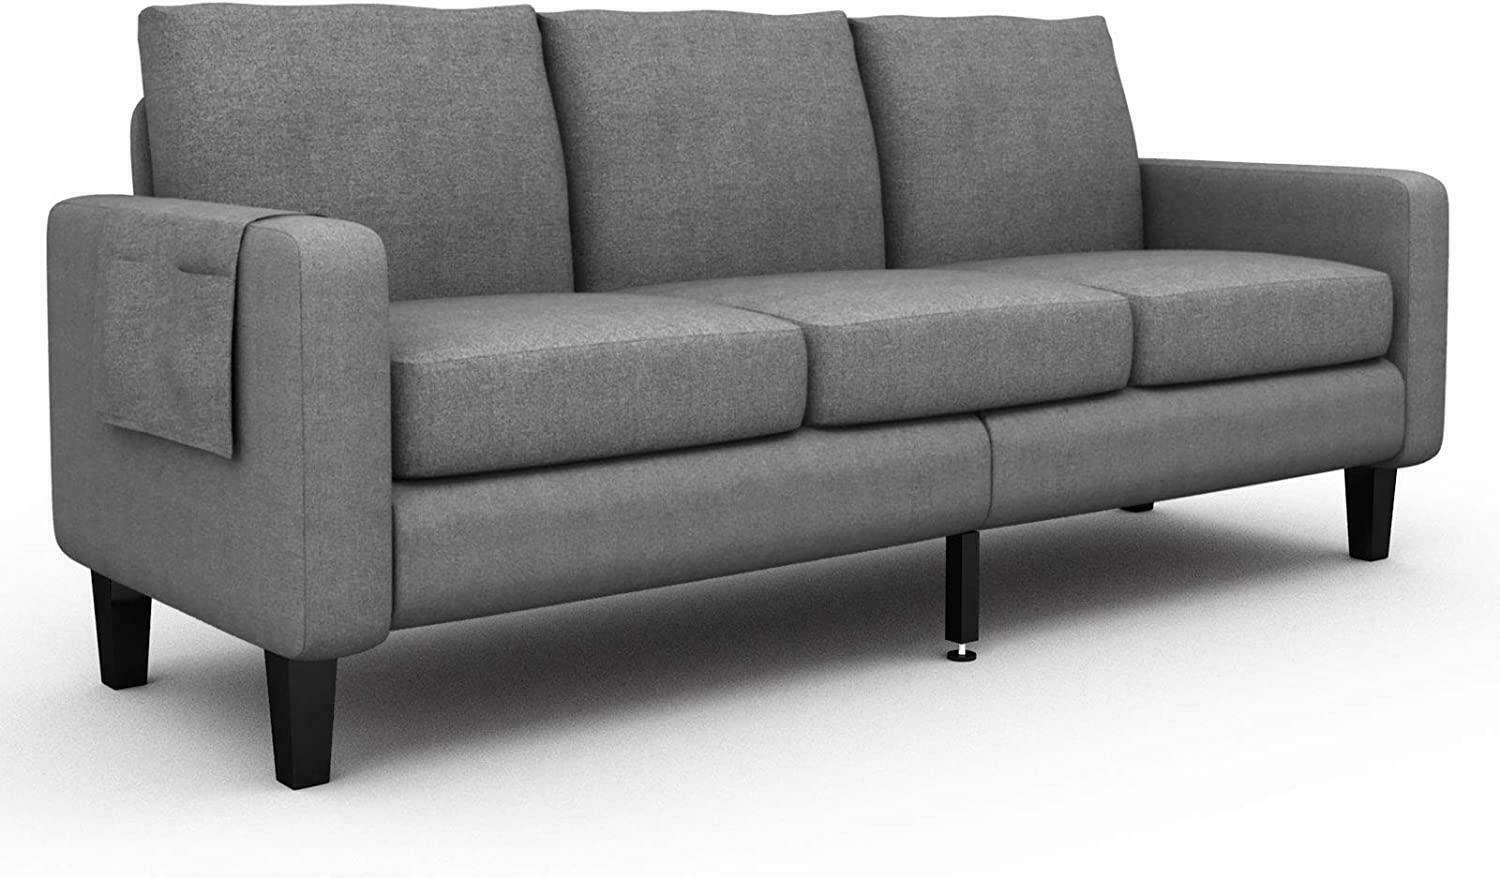 Living Room Sofa Linen Fabric Couch Furniture Upholstered 3 Seat Sofa Couch US